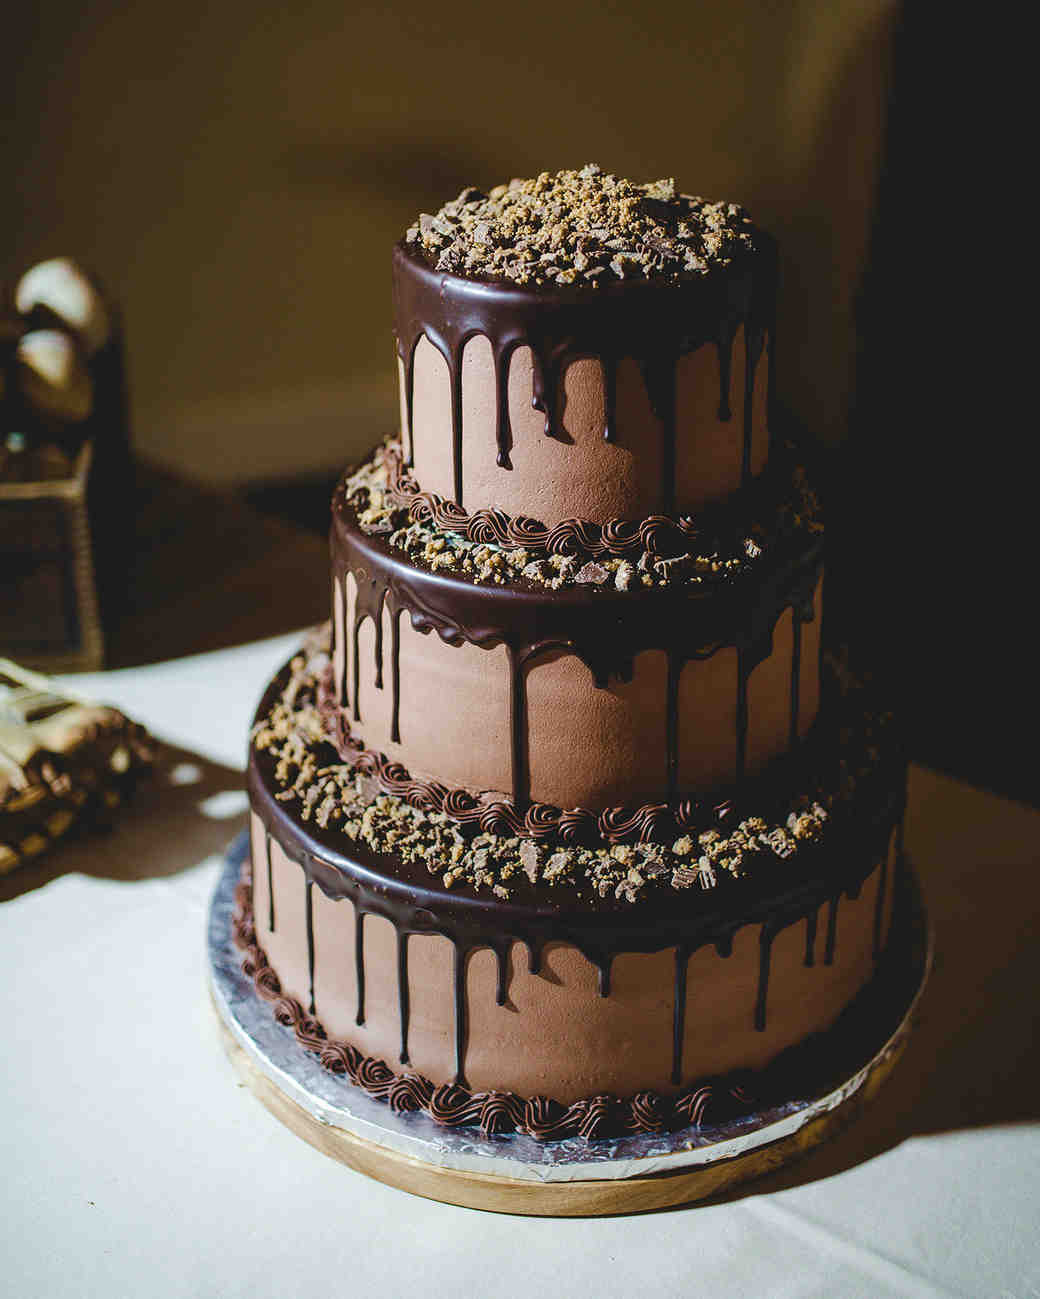 Chocolate Wedding Cakes  26 Chocolate Wedding Cake Ideas That Will Blow Your Guests